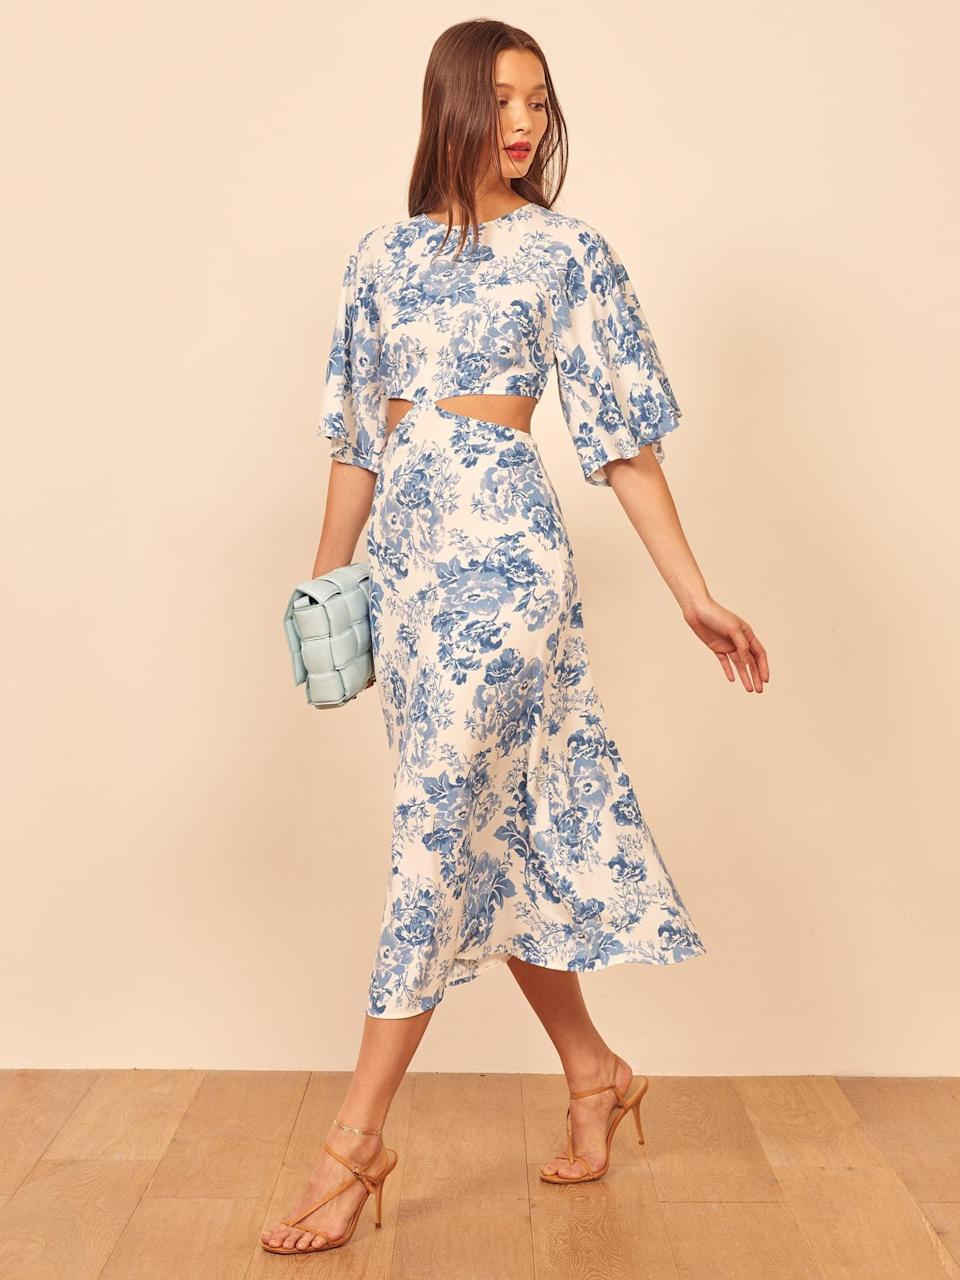 """<p>The cutouts are perfectly placed on this chic <a href=""""https://www.popsugar.com/buy/Reformation-Benny-Dress-571757?p_name=Reformation%20Benny%20Dress&retailer=thereformation.com&pid=571757&price=174&evar1=fab%3Aus&evar9=47465187&evar98=https%3A%2F%2Fwww.popsugar.com%2Ffashion%2Fphoto-gallery%2F47465187%2Fimage%2F47465196%2FReformation-Benny-Dress&list1=sales%2Csale%20shopping%2Creformation%2Cfashion%20shopping&prop13=api&pdata=1"""" class=""""link rapid-noclick-resp"""" rel=""""nofollow noopener"""" target=""""_blank"""" data-ylk=""""slk:Reformation Benny Dress"""">Reformation Benny Dress</a> ($174, originally $218).</p>"""